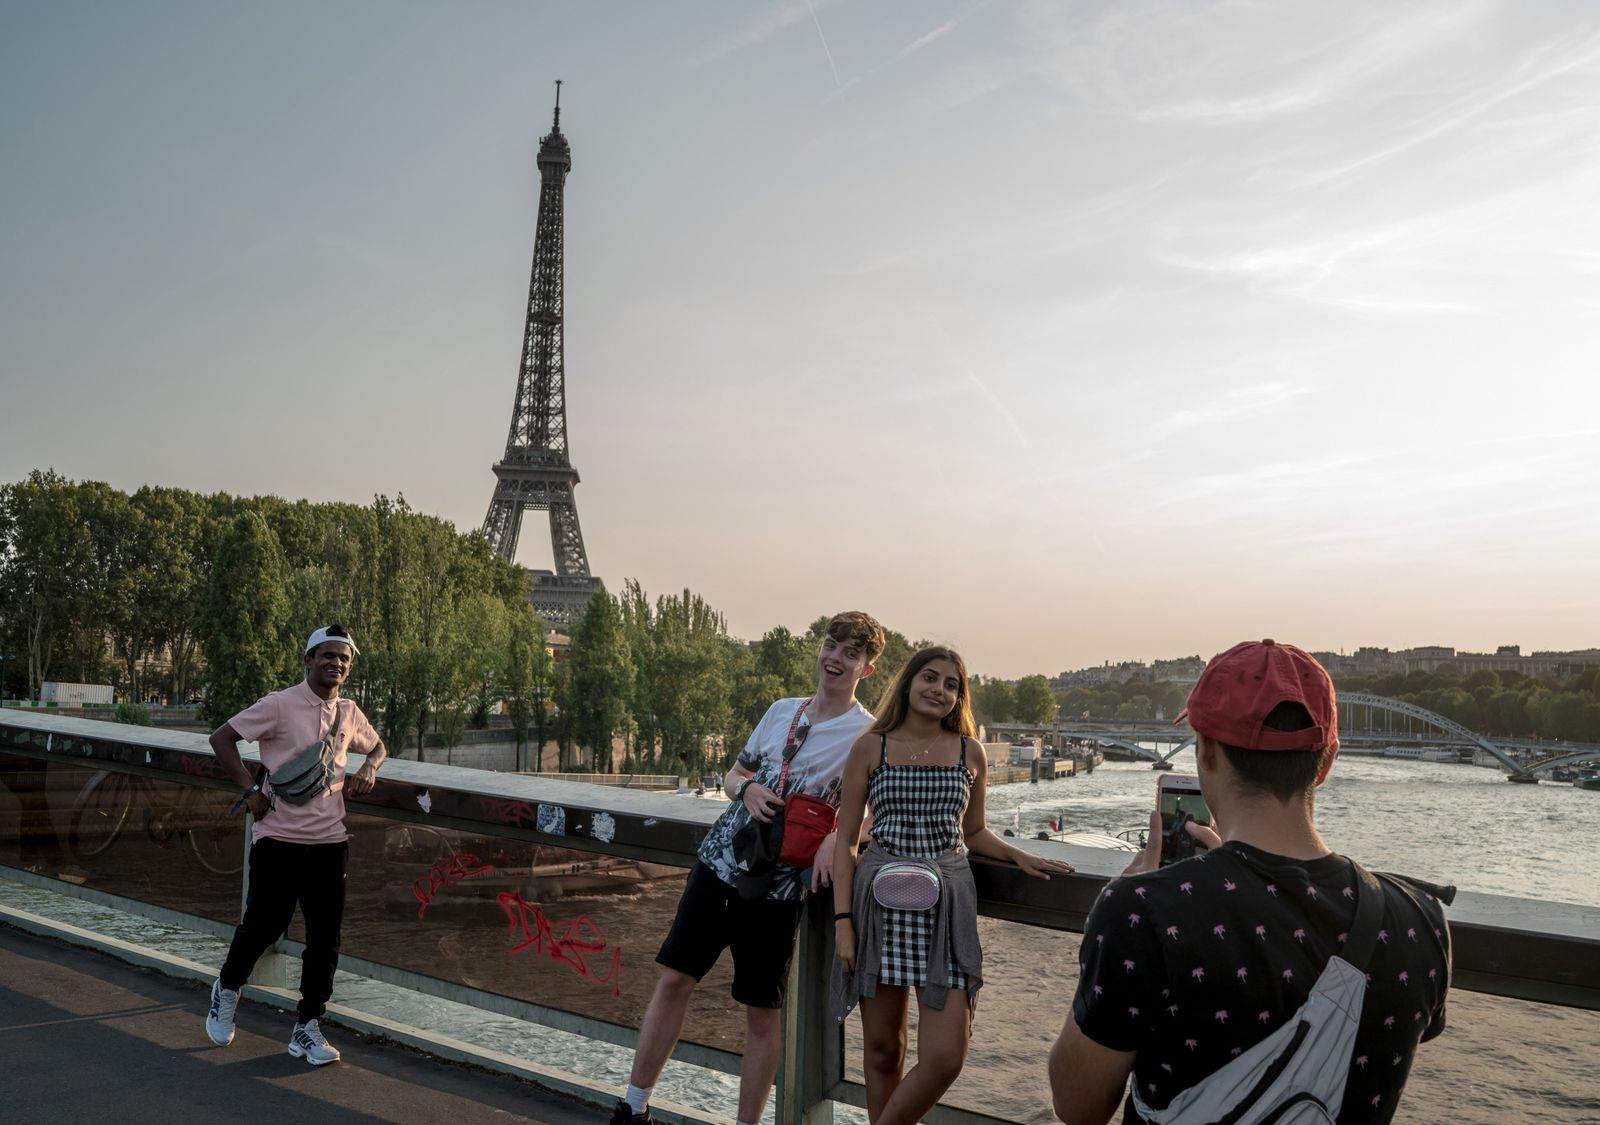 From left: Rakul Sri, Alfie Clarke, Shari Vockrodt and Usman Merchant pose for pictures in front of the Eiffel Tower in Paris.